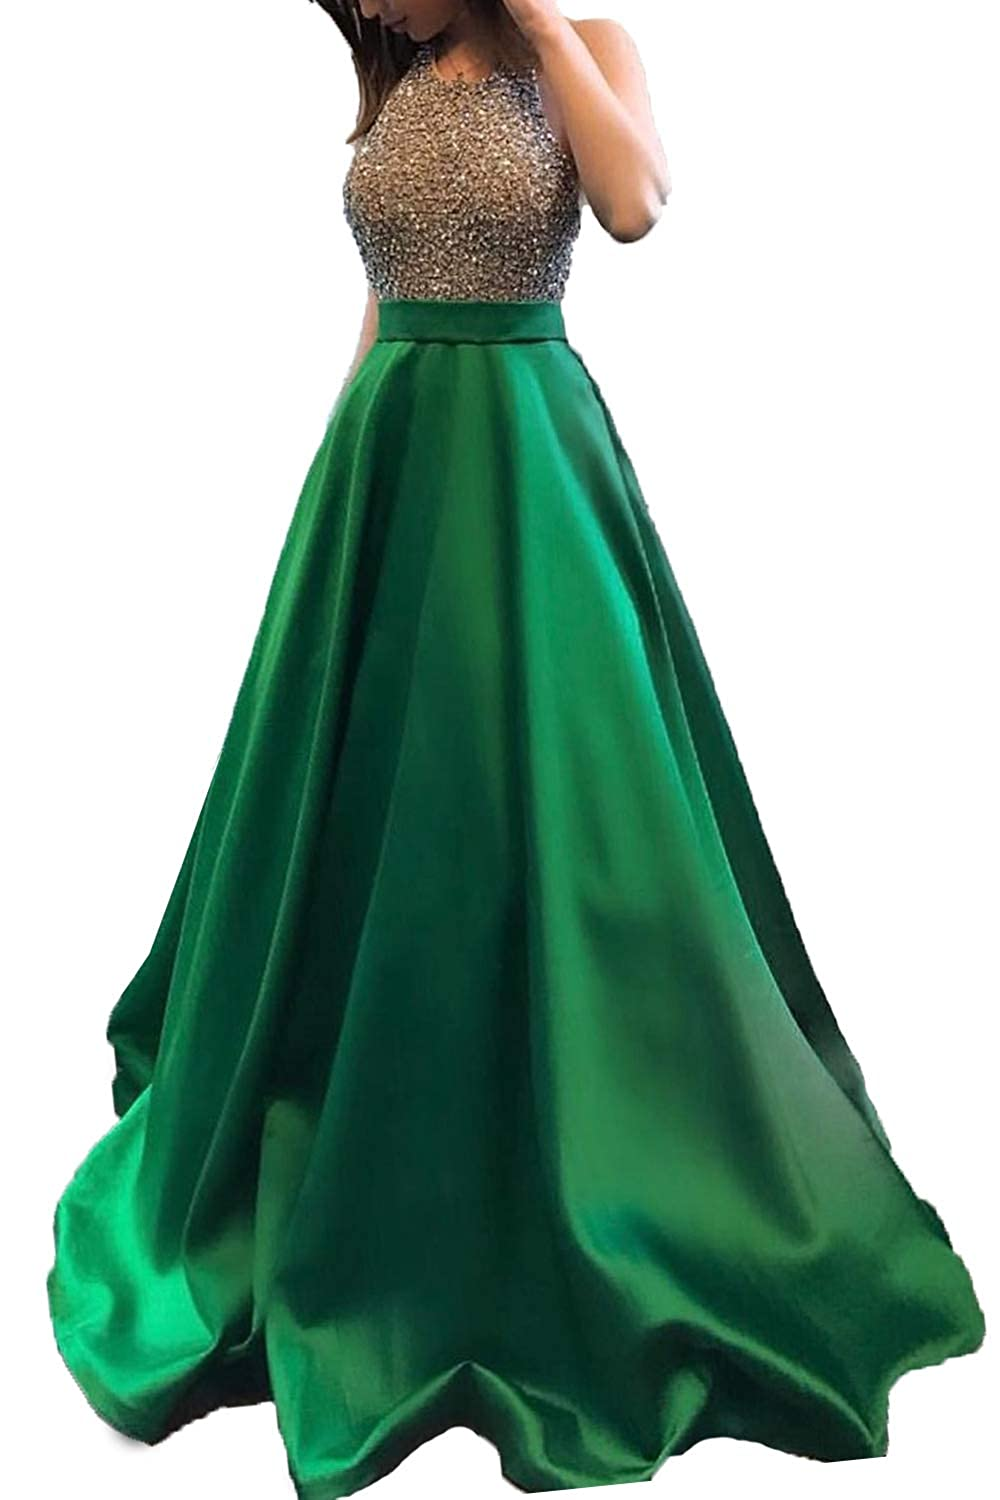 Emerald Green Promworld Women's Rhinestone Halter Neck A line Prom Dress Satin Formal Gown Evening Party Dress